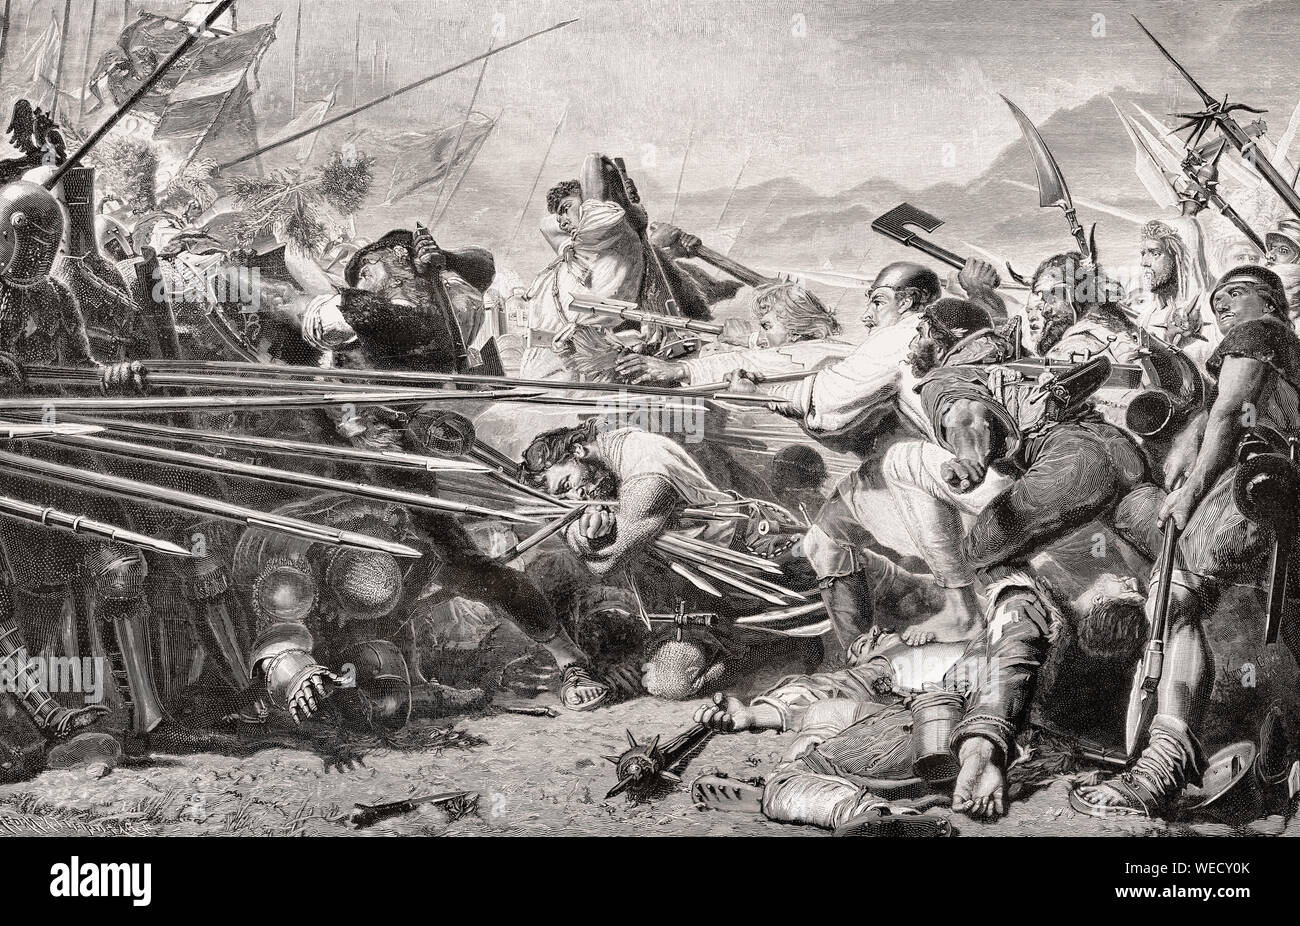 Death of Arnold von Winkelried, a legendary hero of Swiss history, Battle of Sempach, 1386 Stock Photo